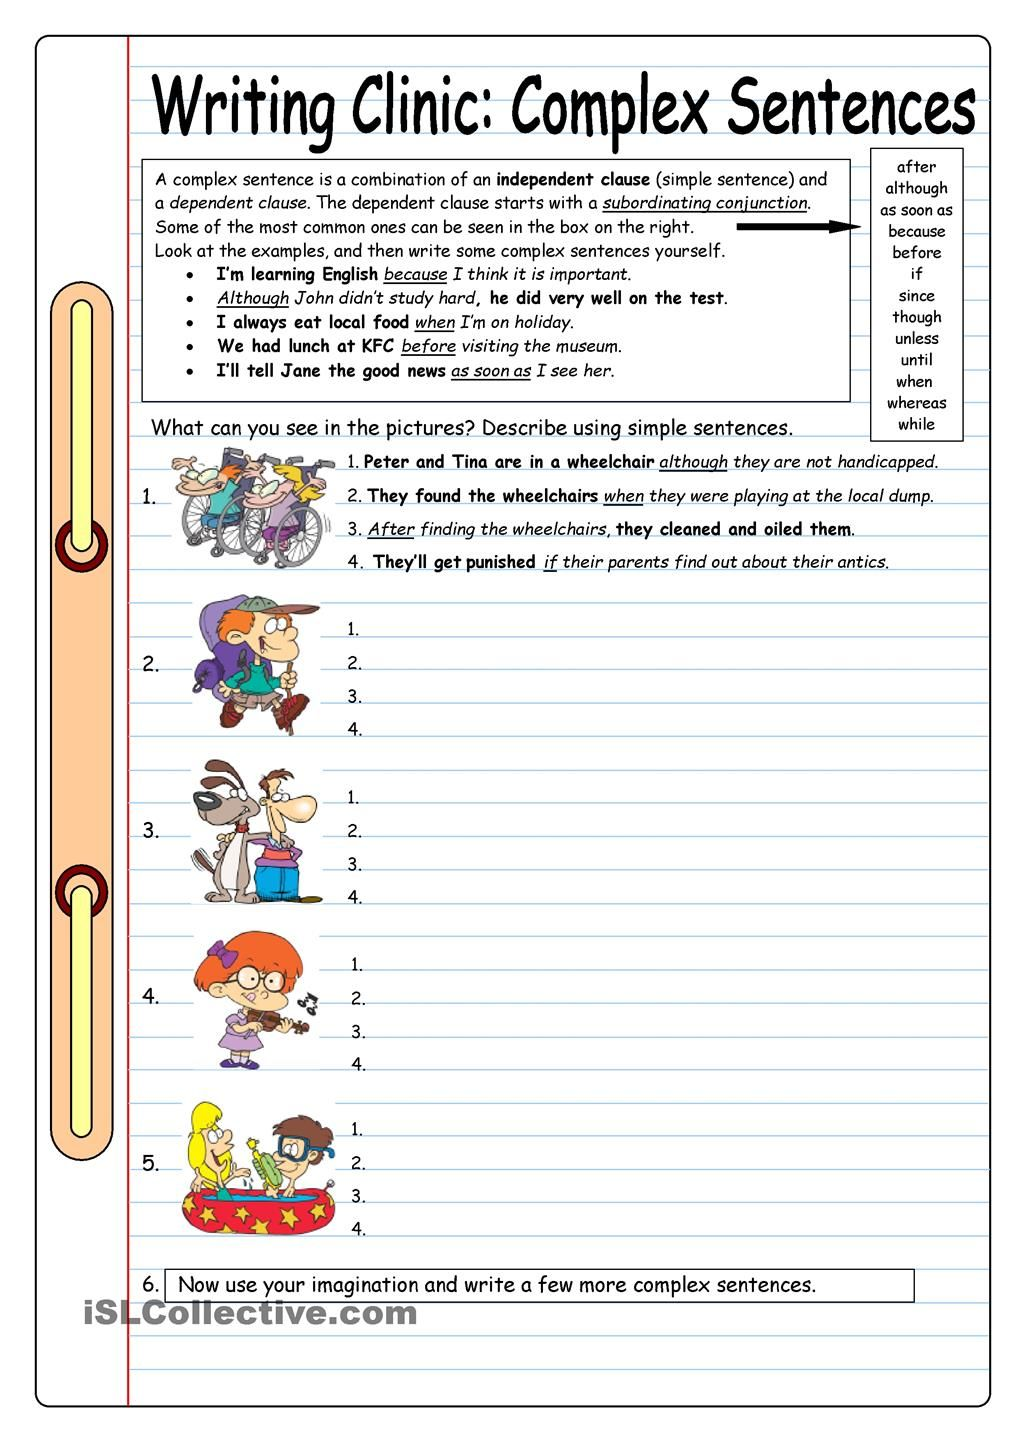 Writing Clinic: Complex Sentences worksheet - Free ESL printable worksheets  made by teachers